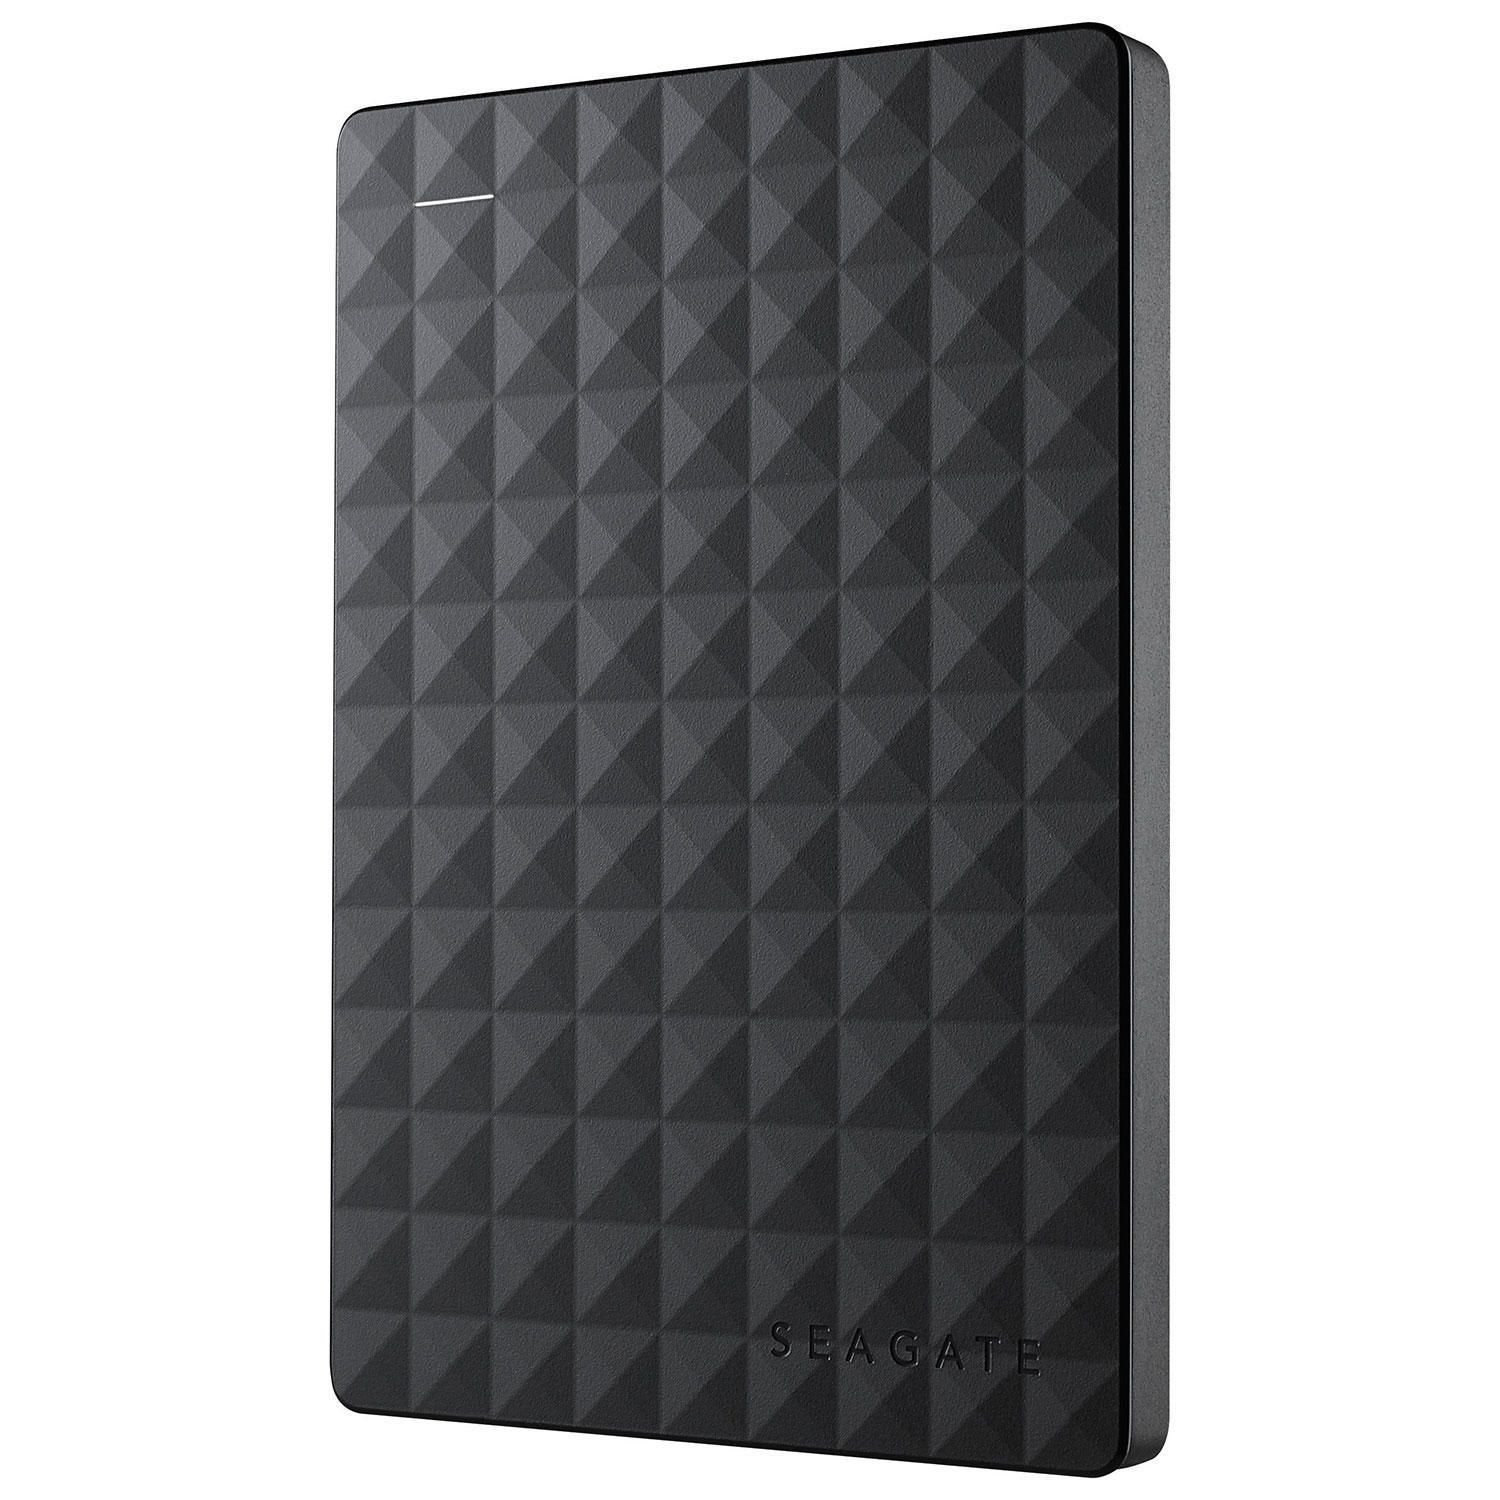 shop online for external hard drives walmart ca seagate expansion 2tb 2 5 5400rpm usb 3 0 portable external hard drive